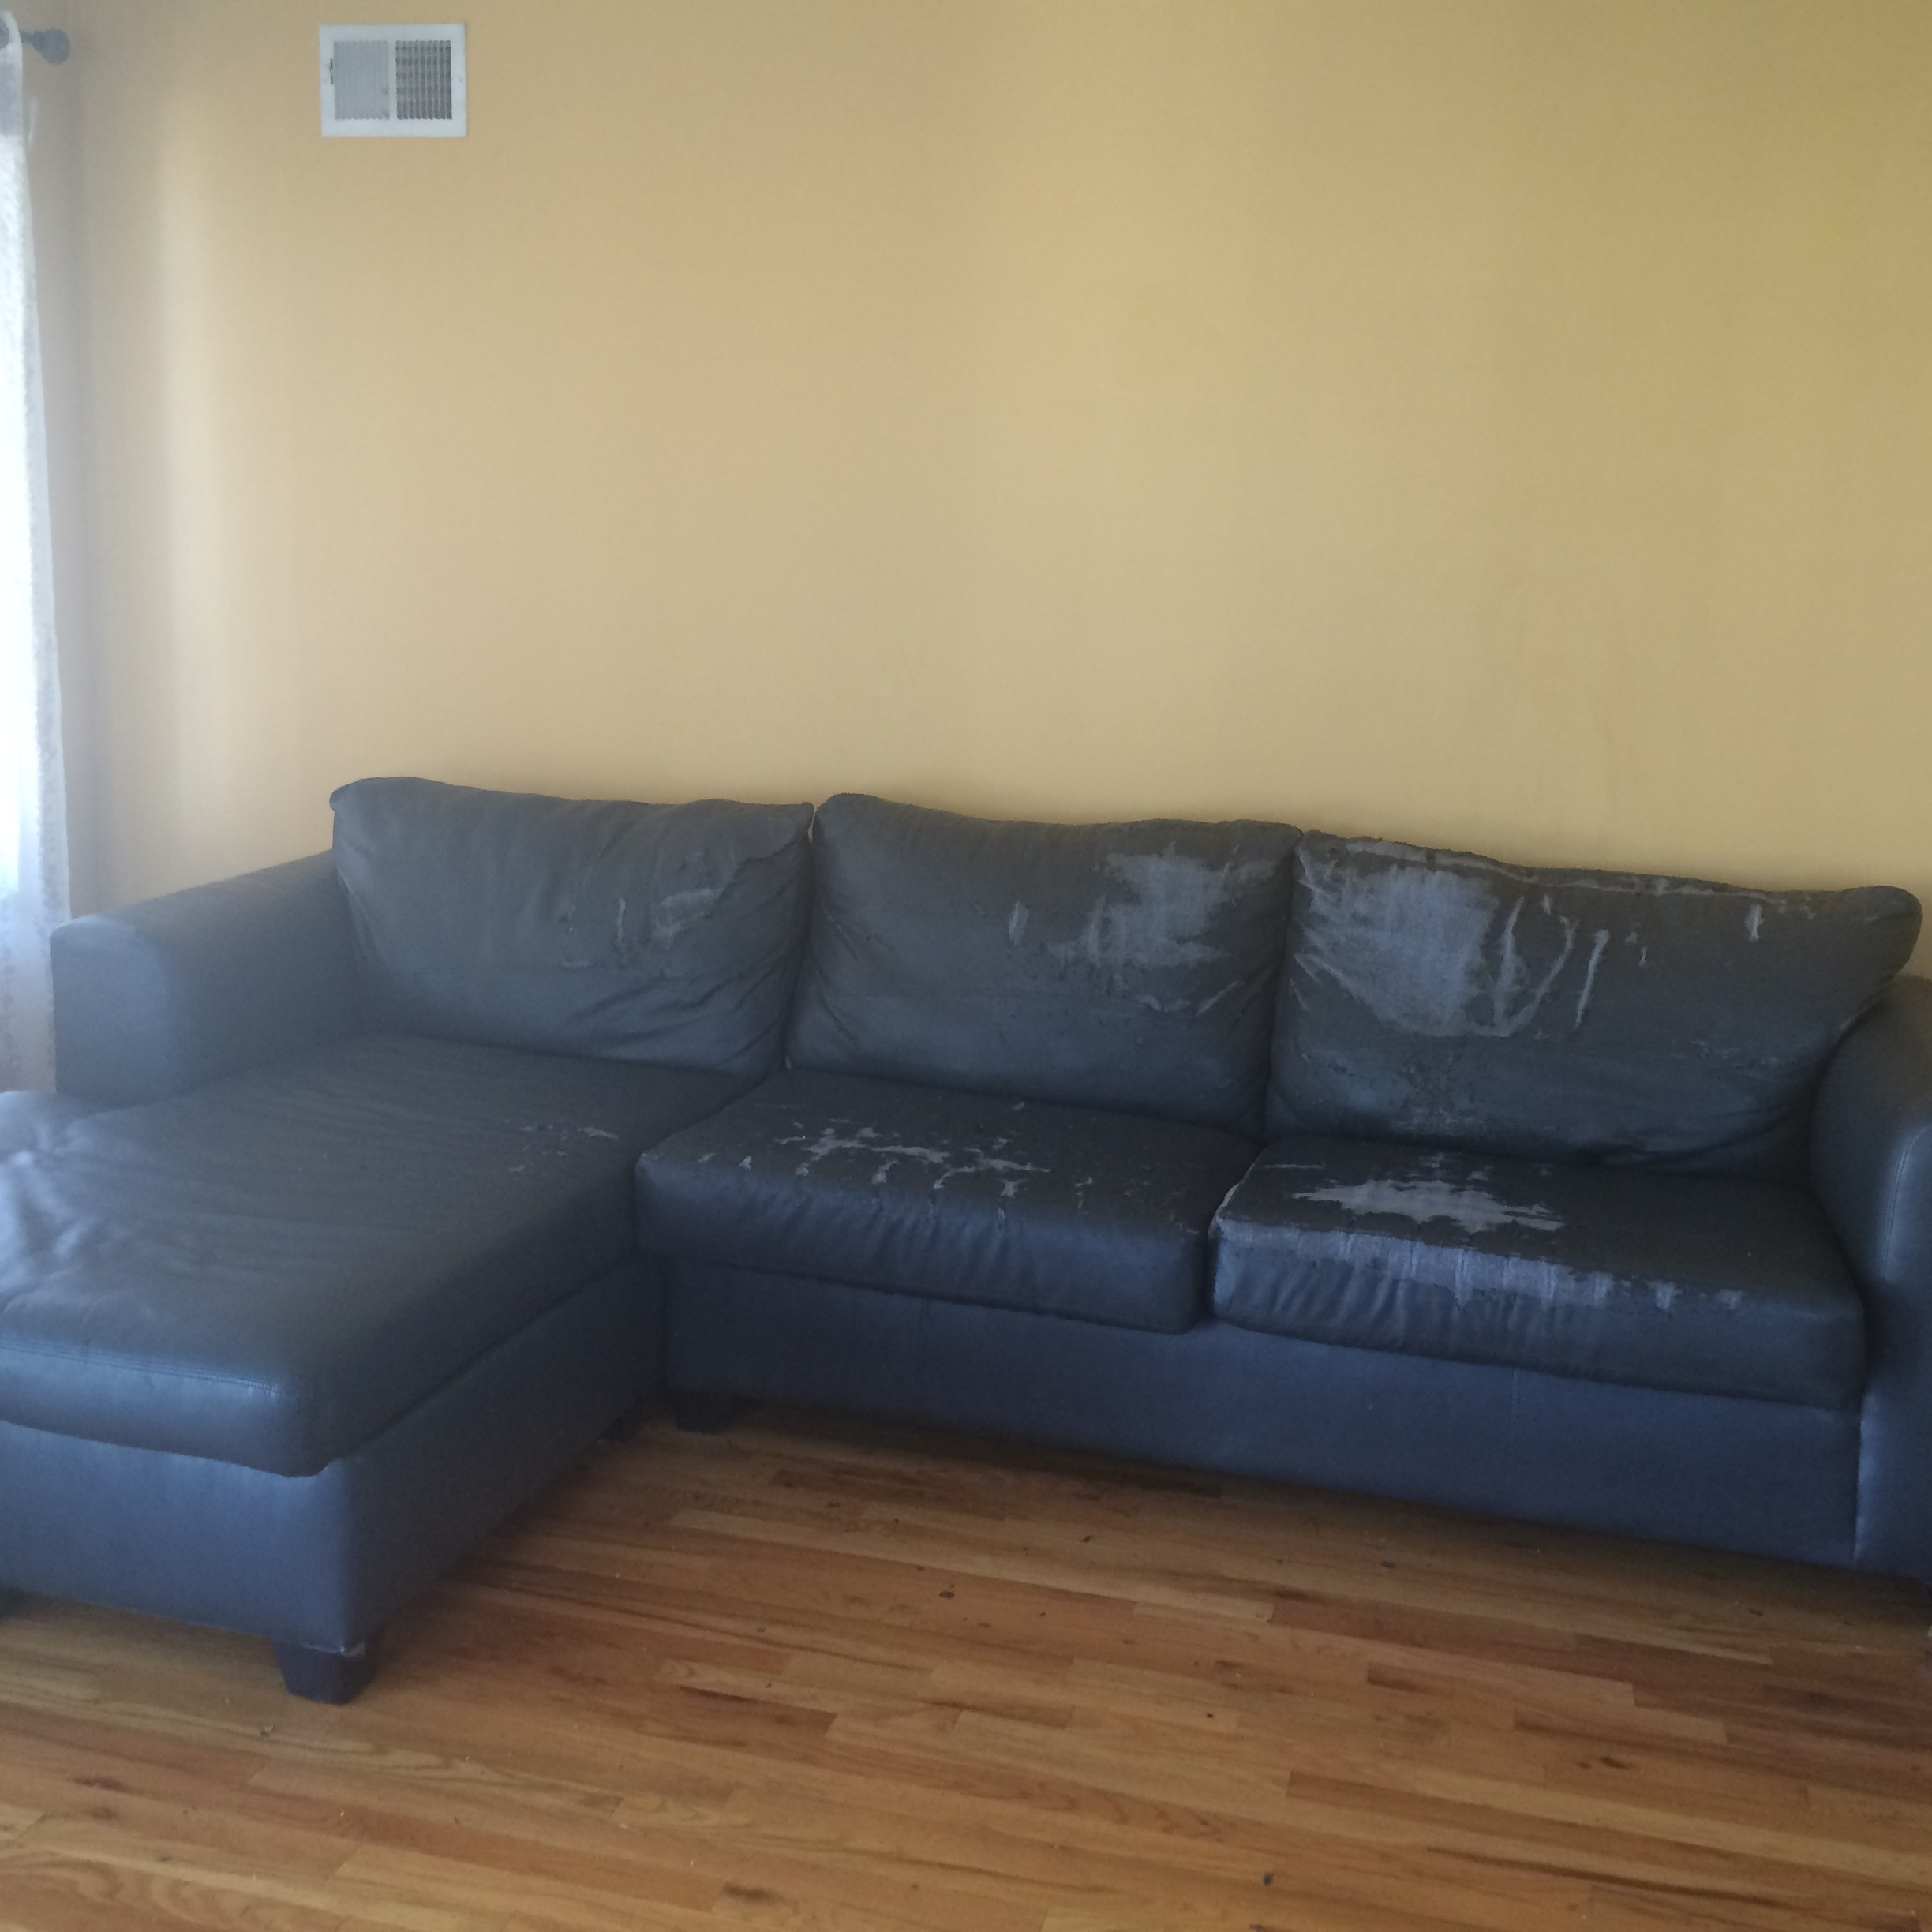 Widely Used Jennifer Convertibles Sectional Sofas In 10 Reviews Of Jennifer Convertibles Inc Leather Sofa (View 15 of 20)